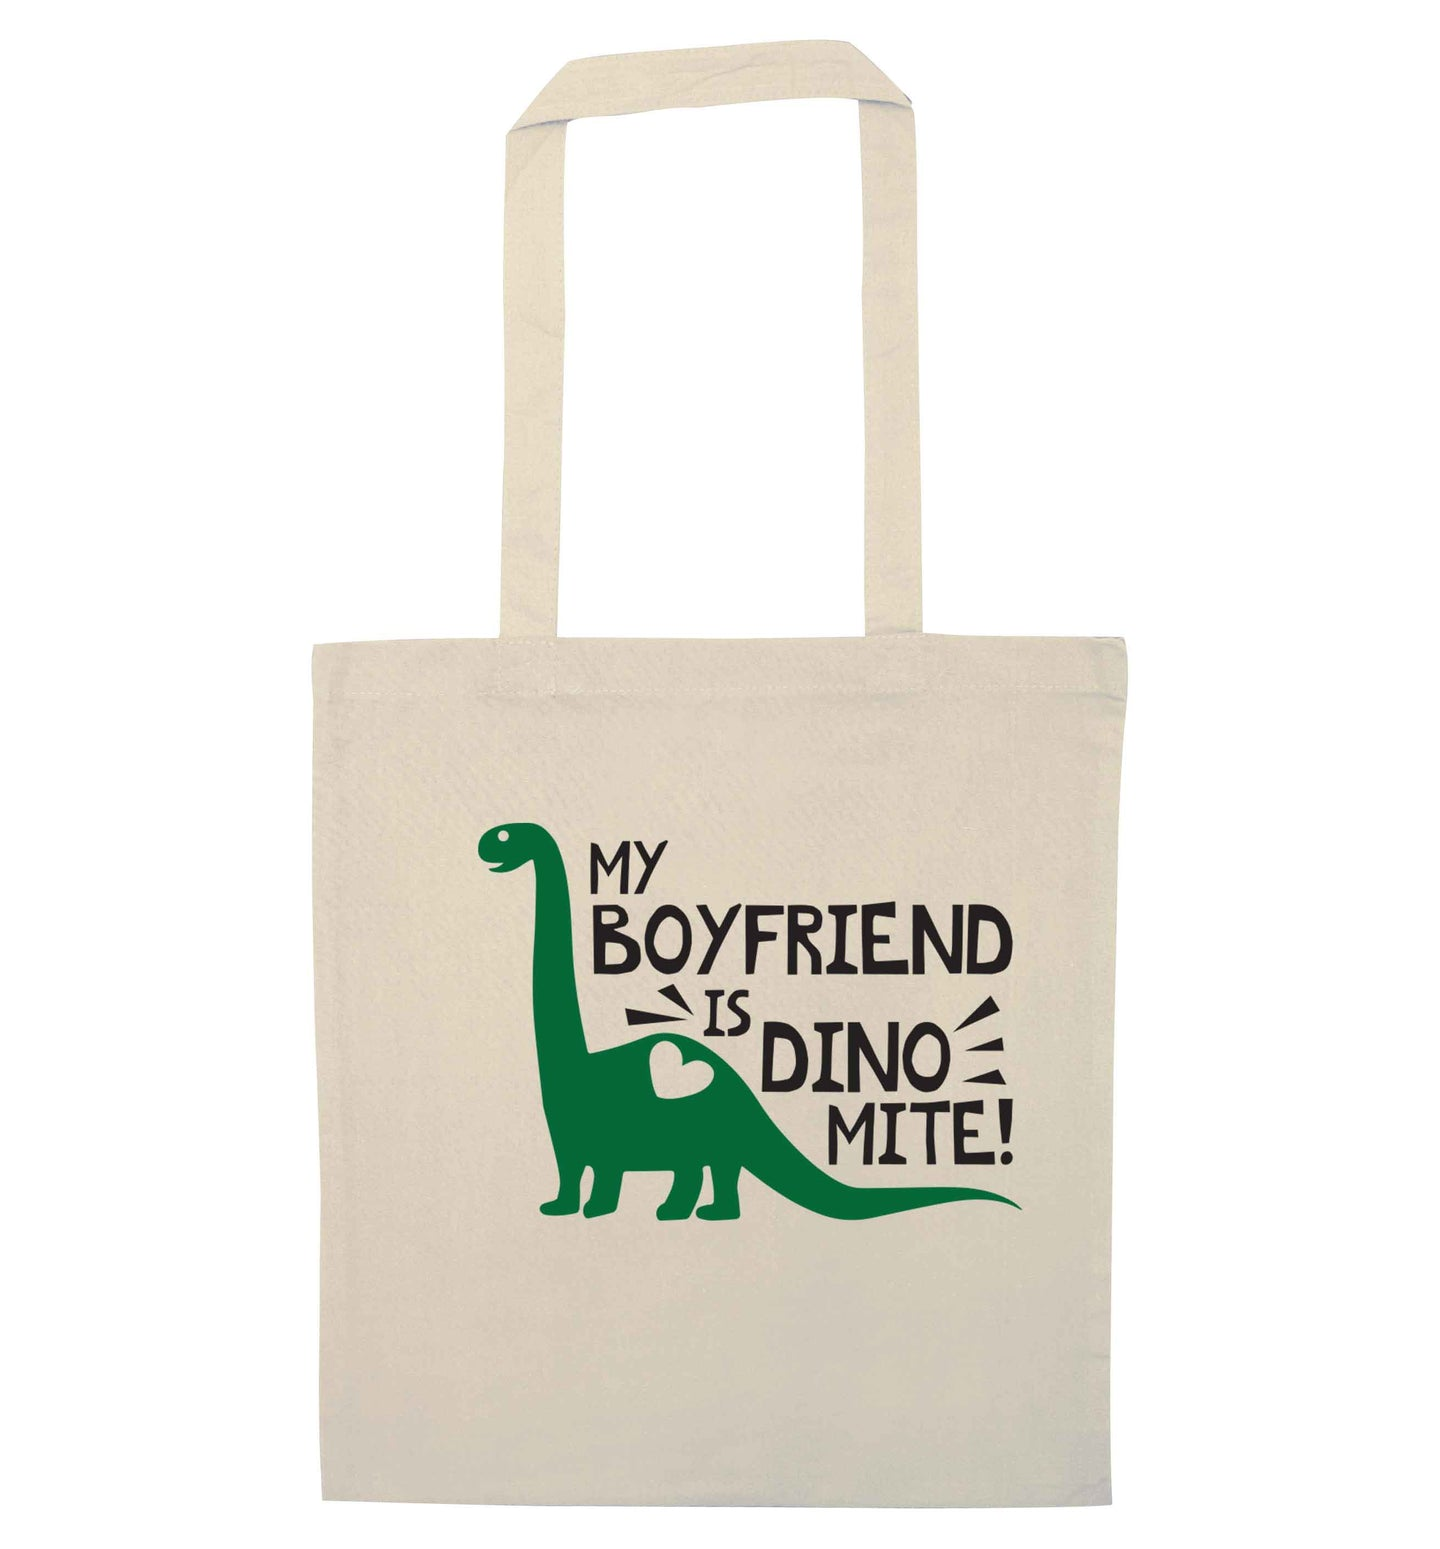 My boyfriend is dinomite! natural tote bag